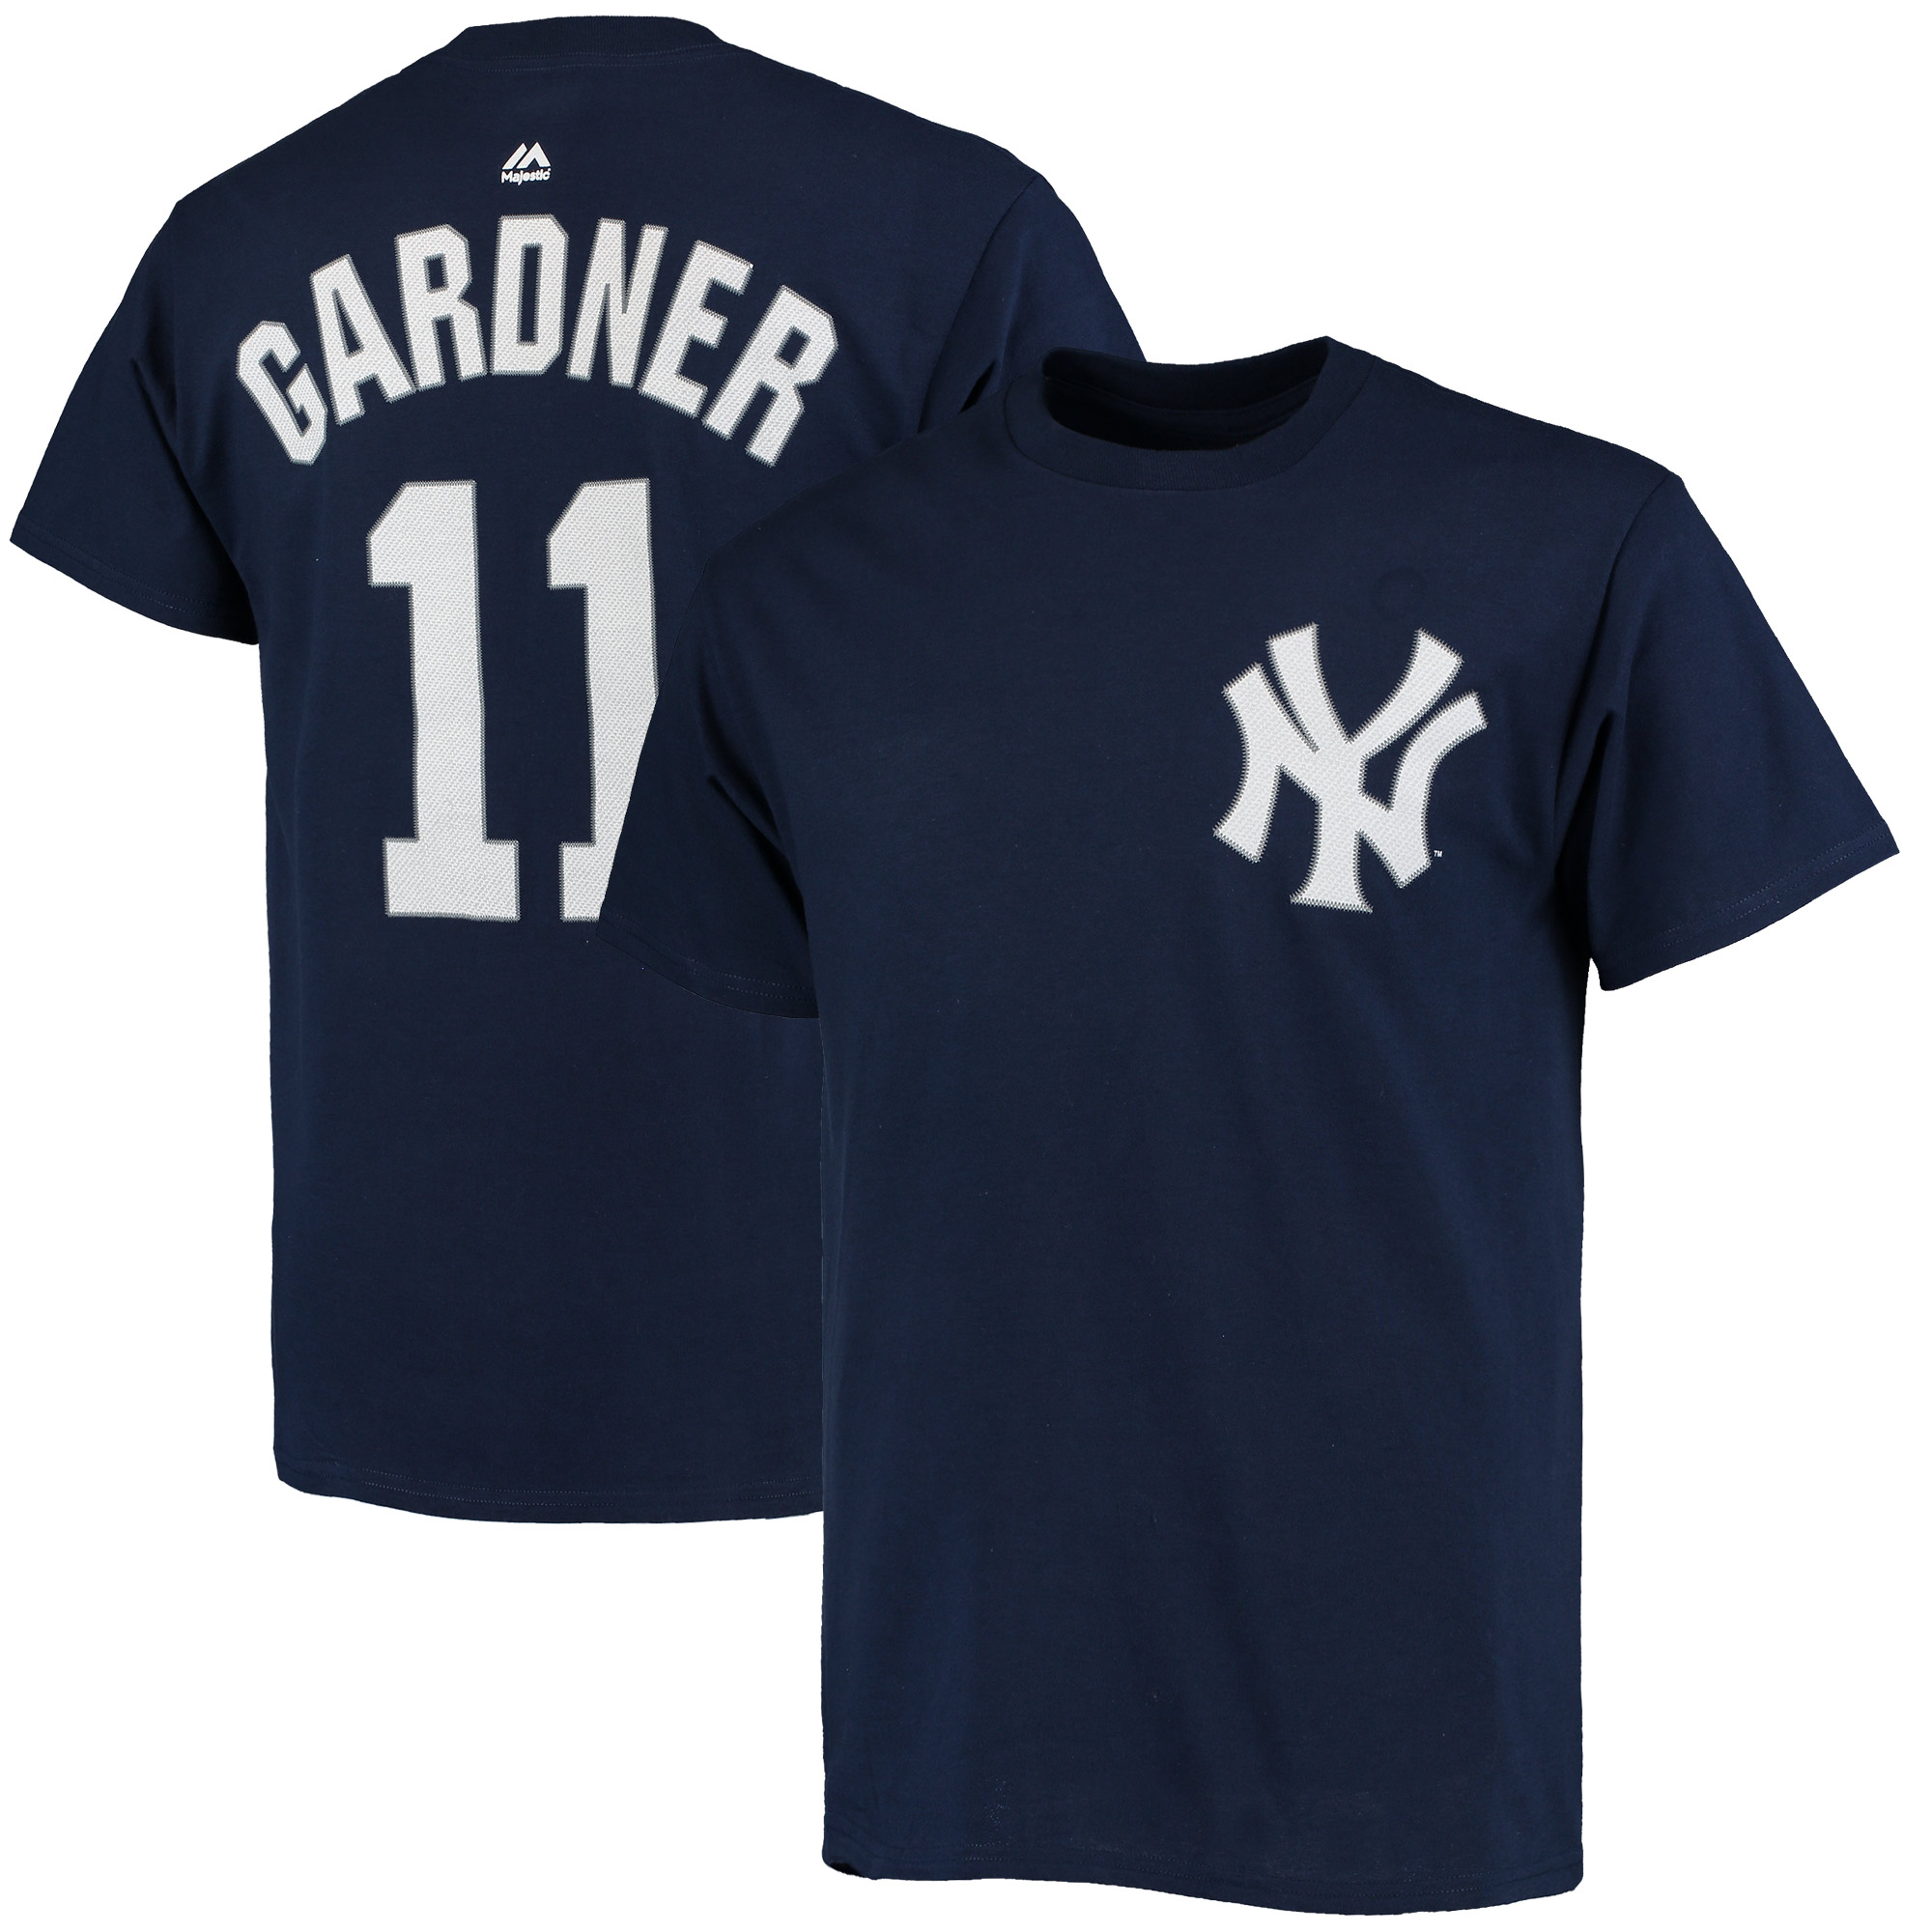 Brett Gardner New York Yankees Majestic Official Name and Number T-Shirt - Navy